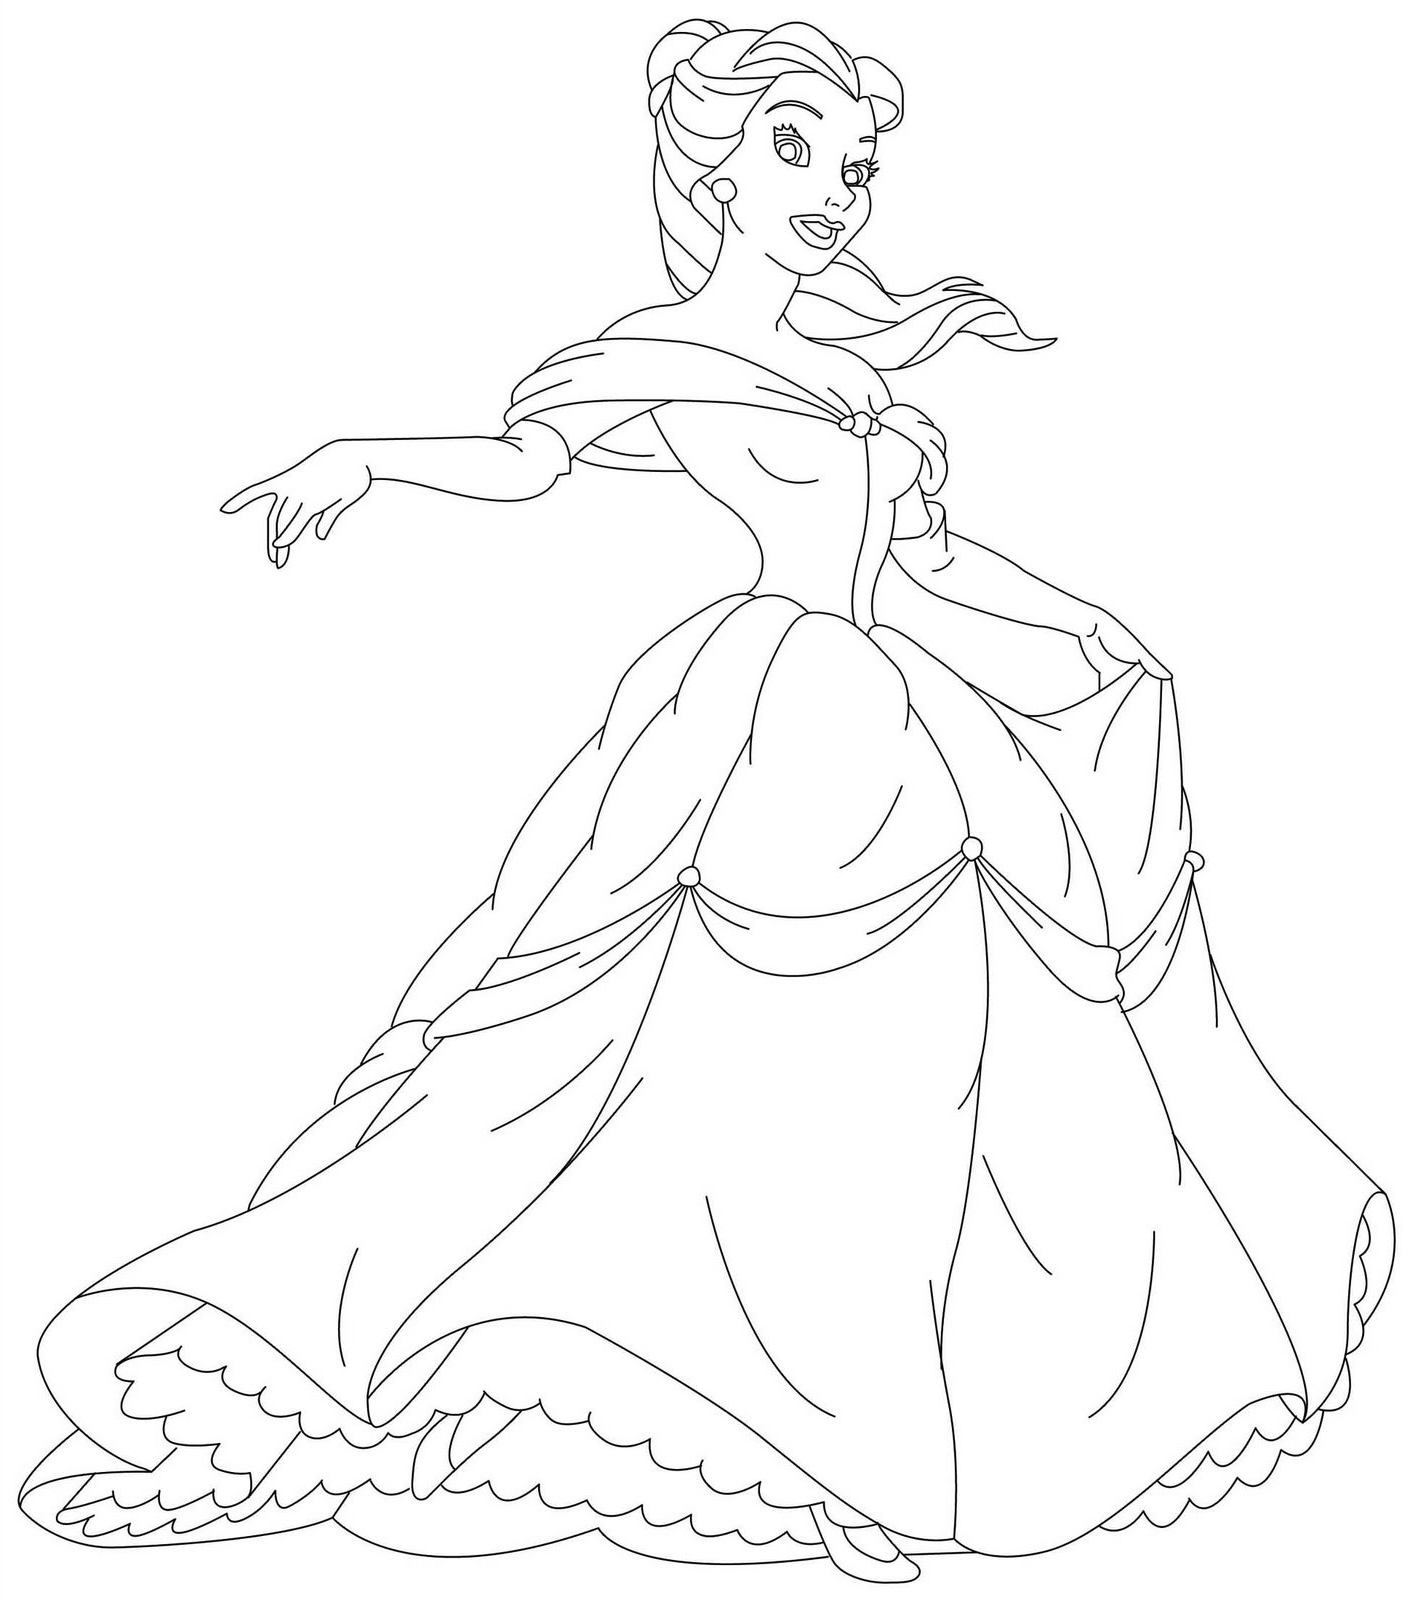 prinses coloring pages - photo#22